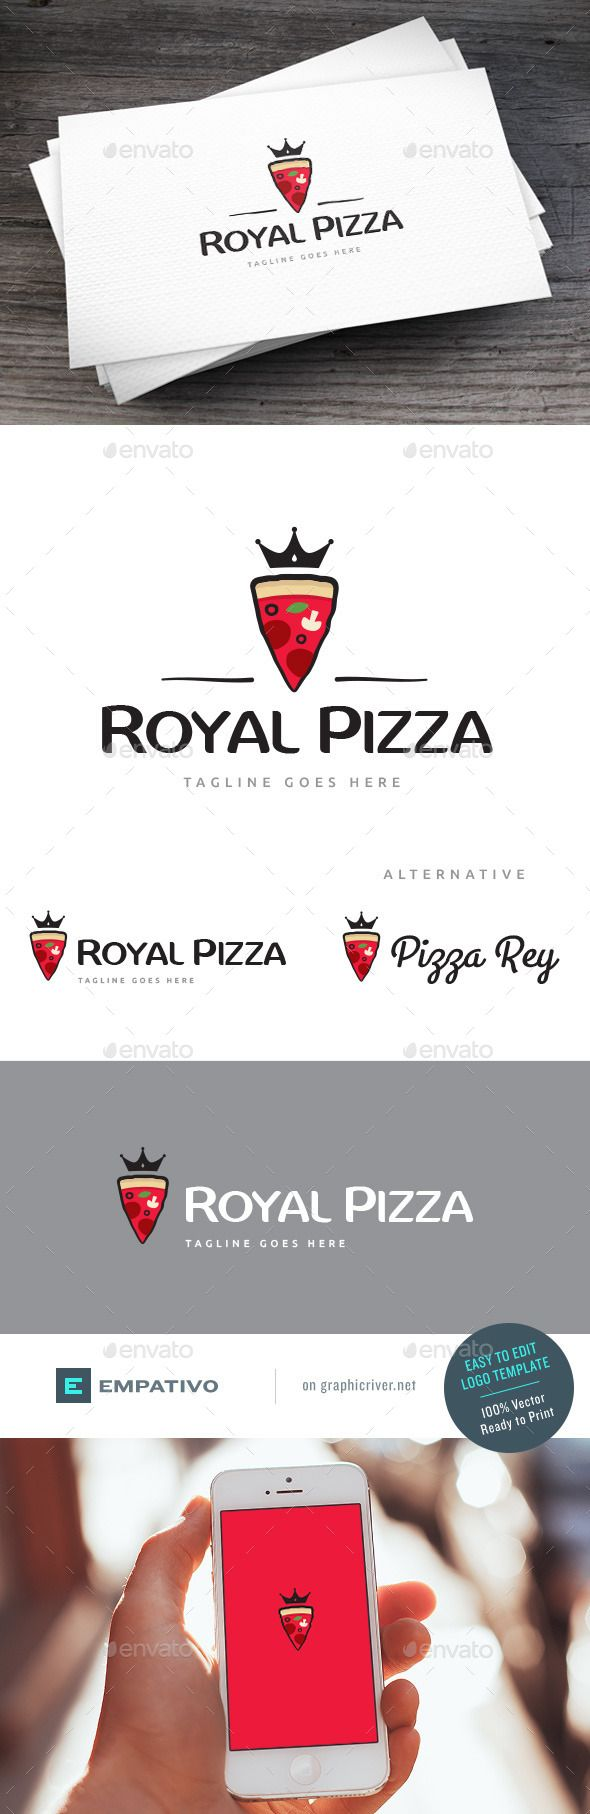 Royal Pizza Logo Template — Vector EPS #gourmet #restaurant menu • Available here → https://graphicriver.net/item/royal-pizza-logo-template/12690399?ref=pxcr